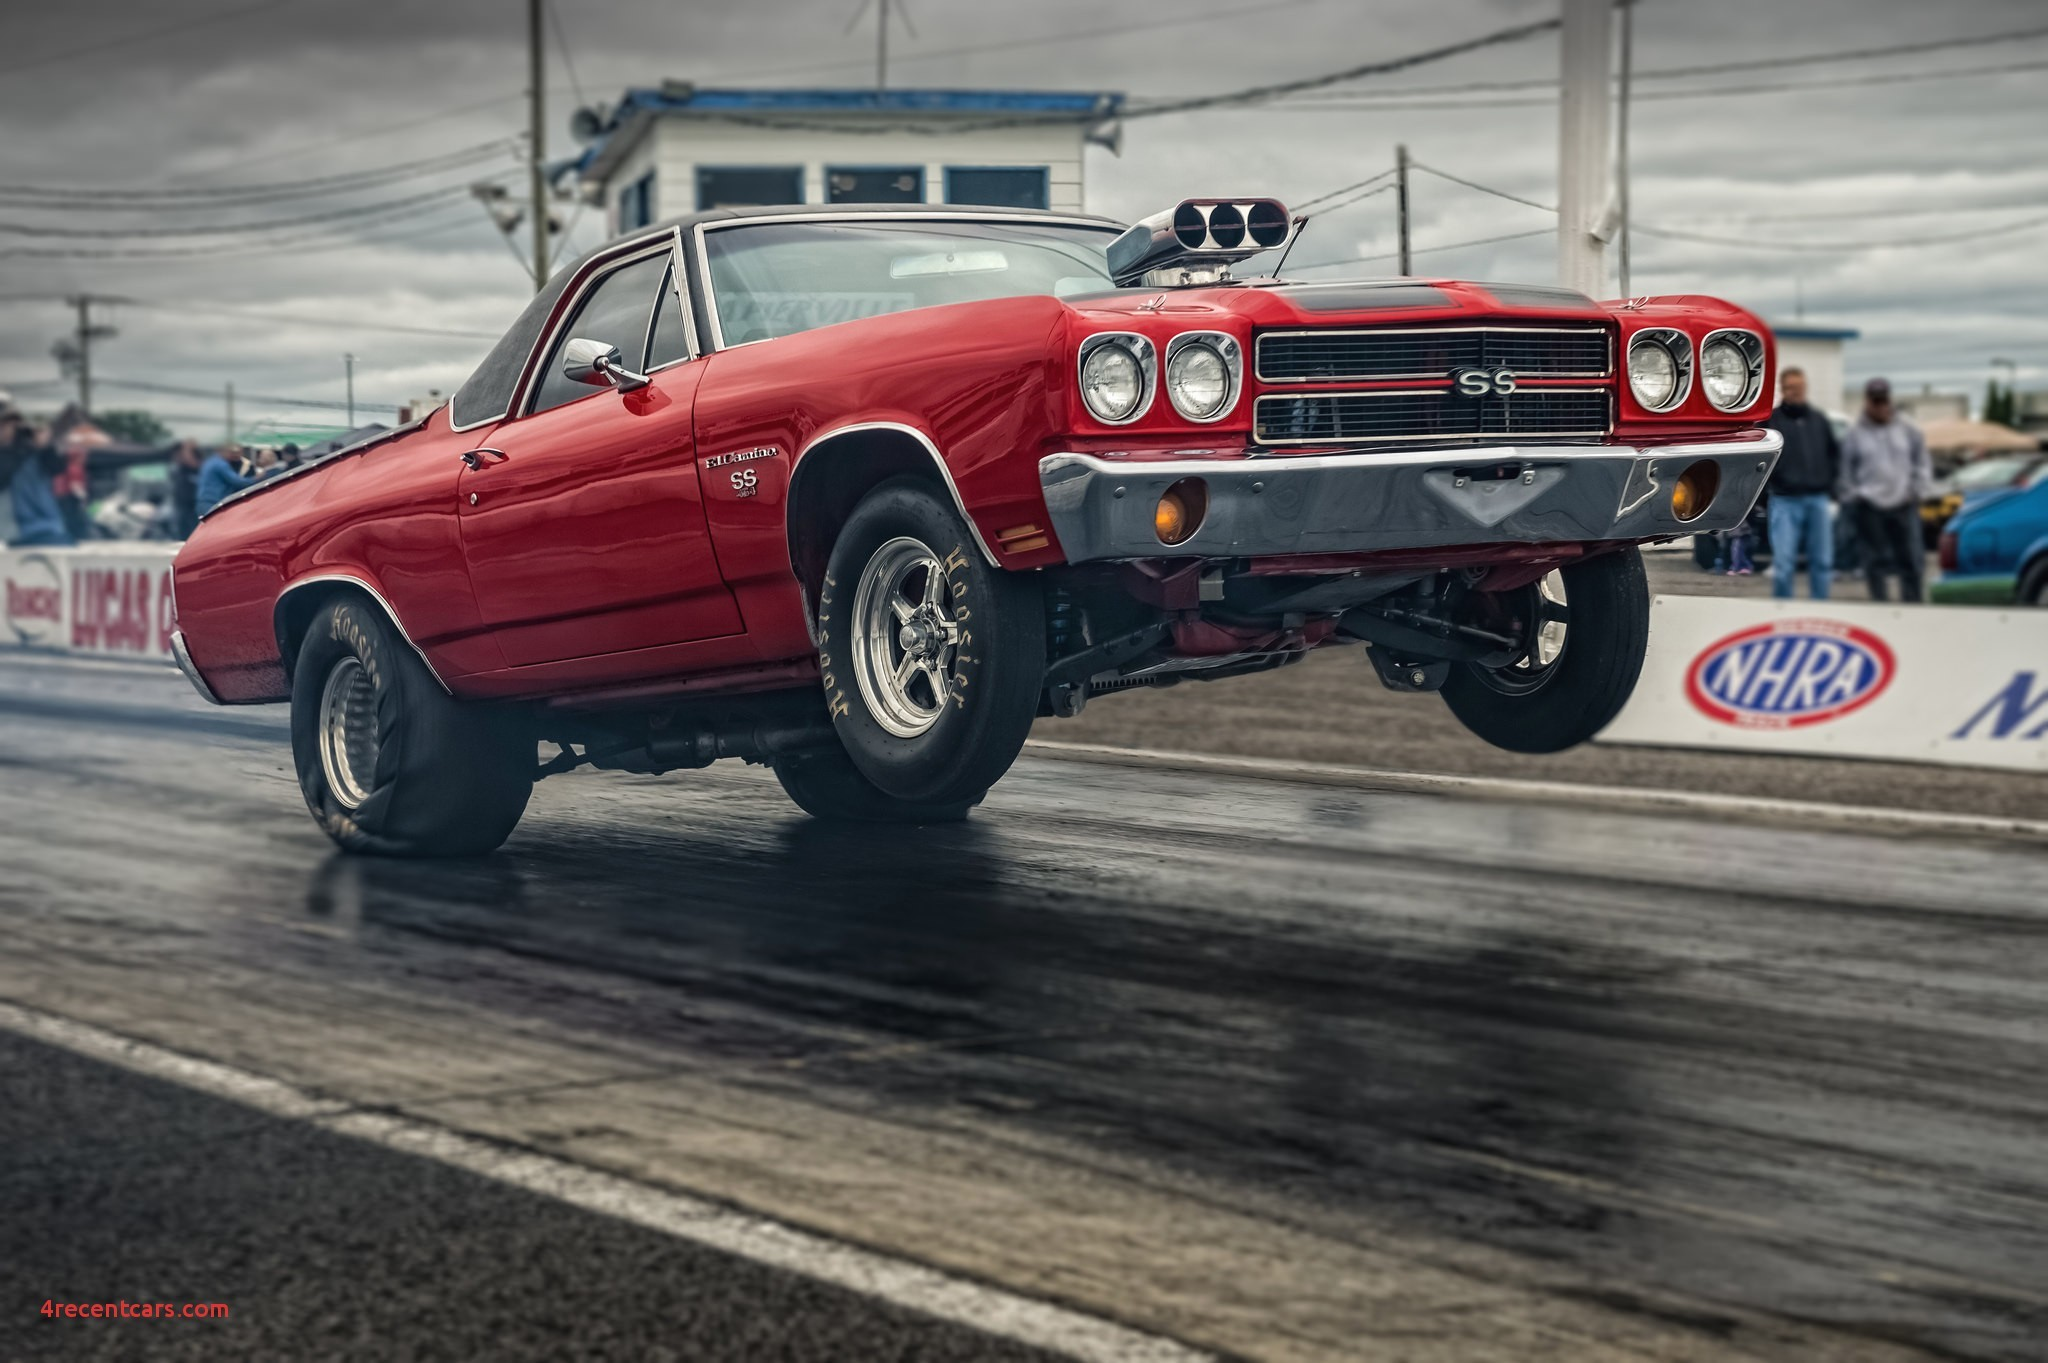 Res: 2048x1363, Drag Racing Wallpapers 6 - 2048 X 1363